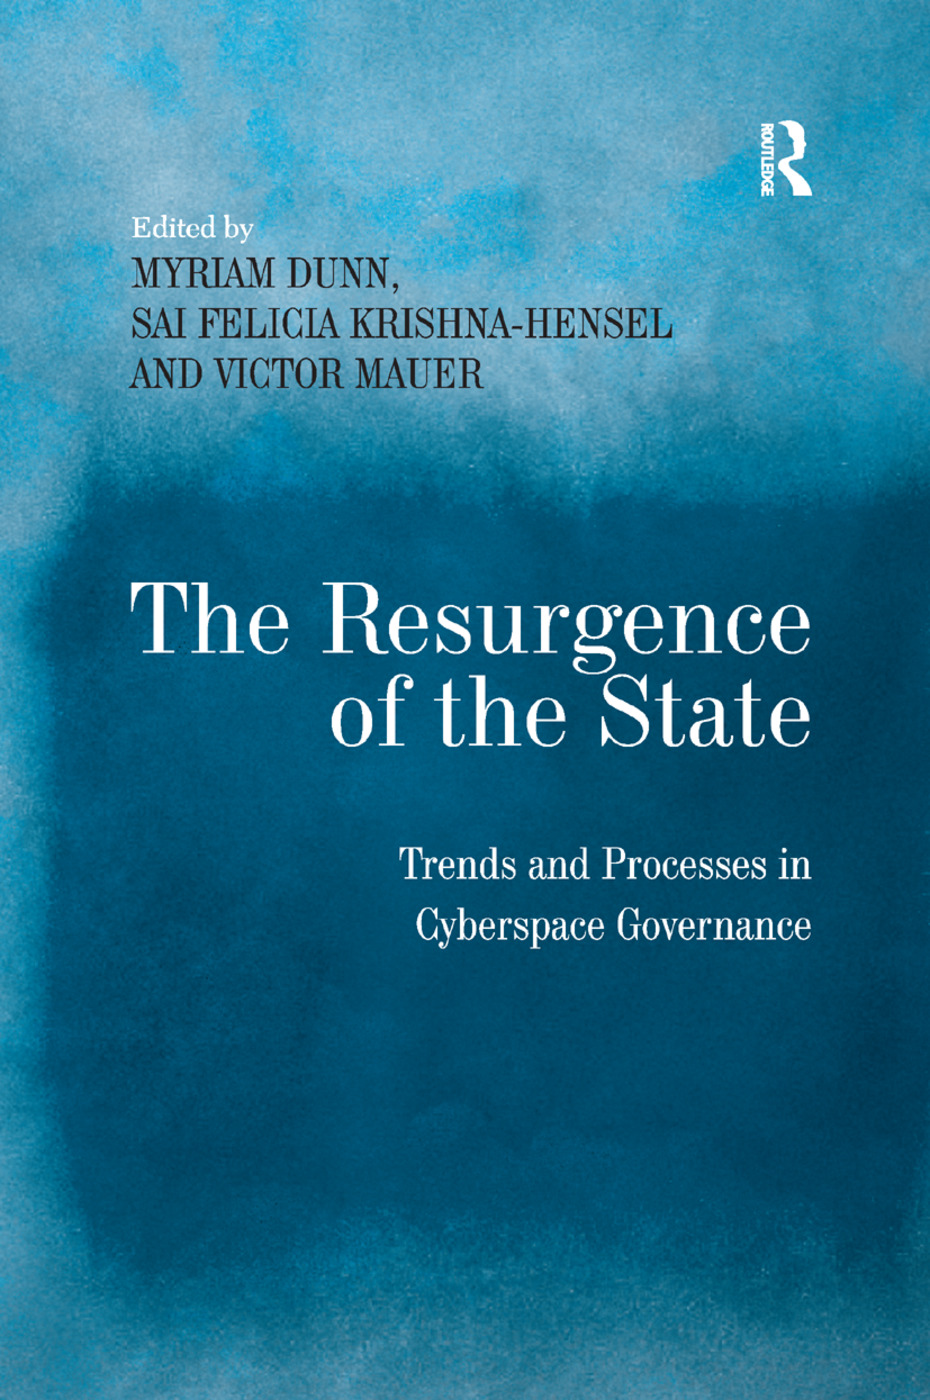 The Resurgence of the State: Trends and Processes in Cyberspace Governance book cover